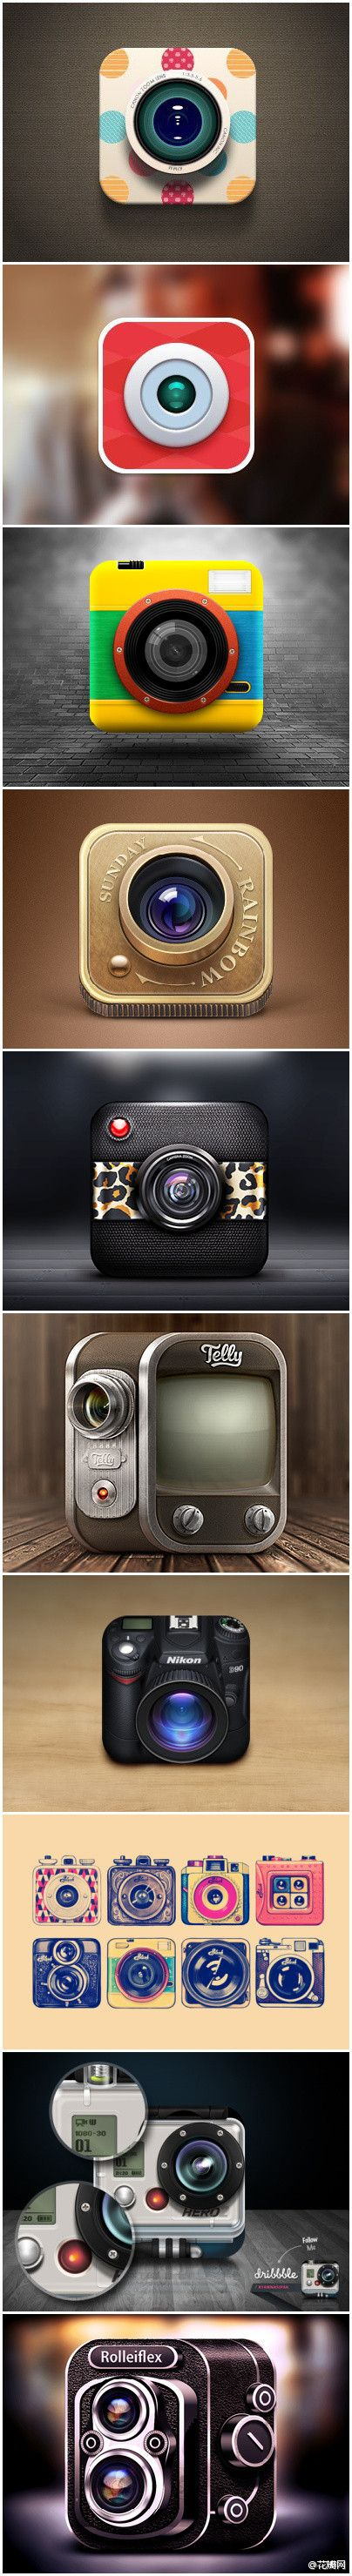 pinterest.com/fra411 #Apps #Icon - Camera Icons + Illustration #icons